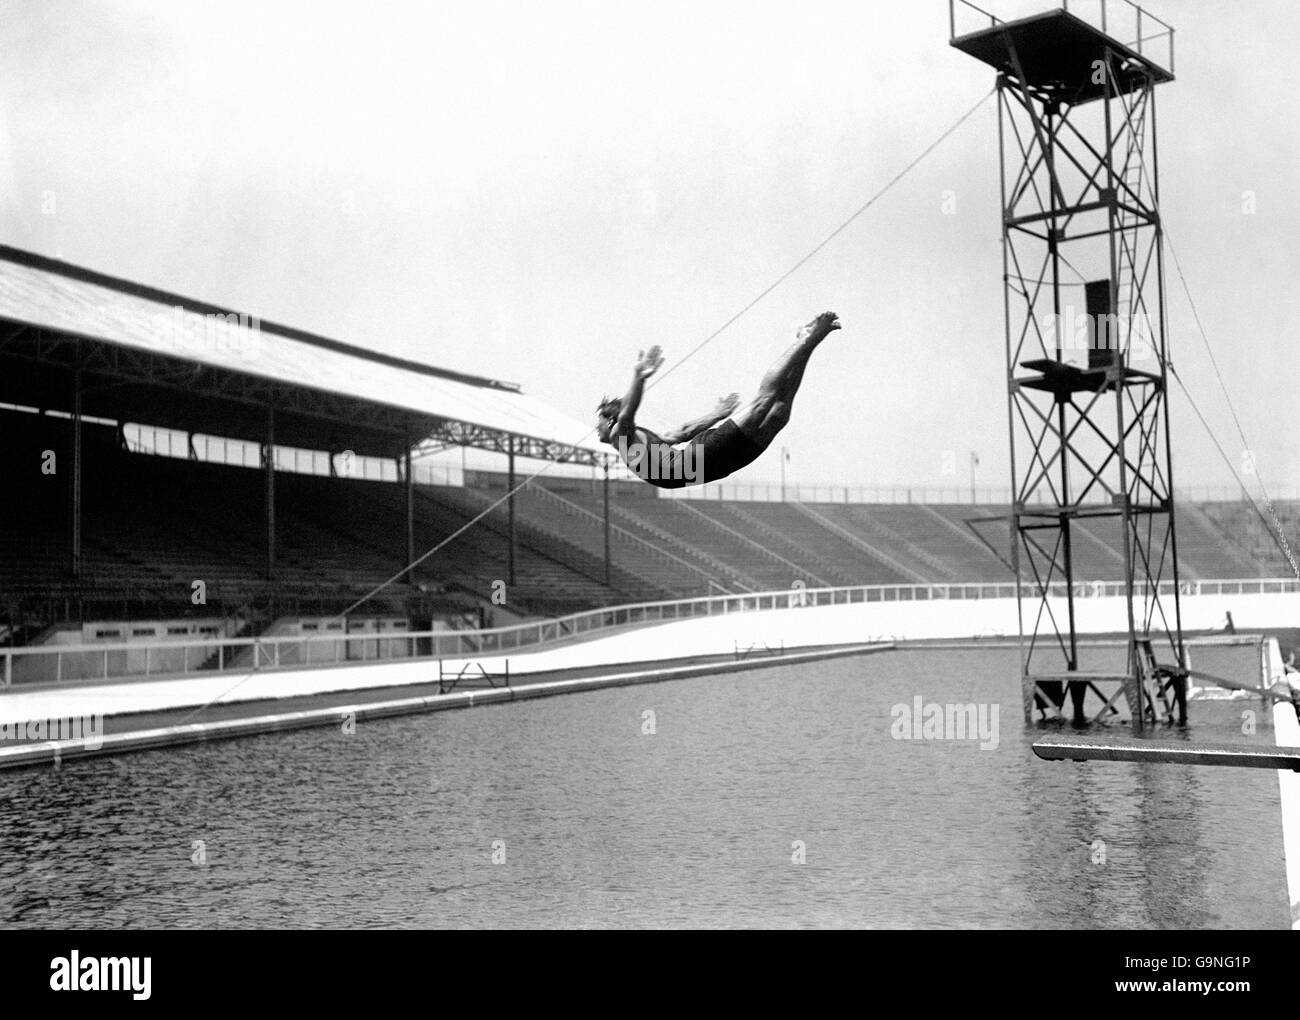 Diving - London Olympic Games 1908 - Springboard - White City - Stock Image